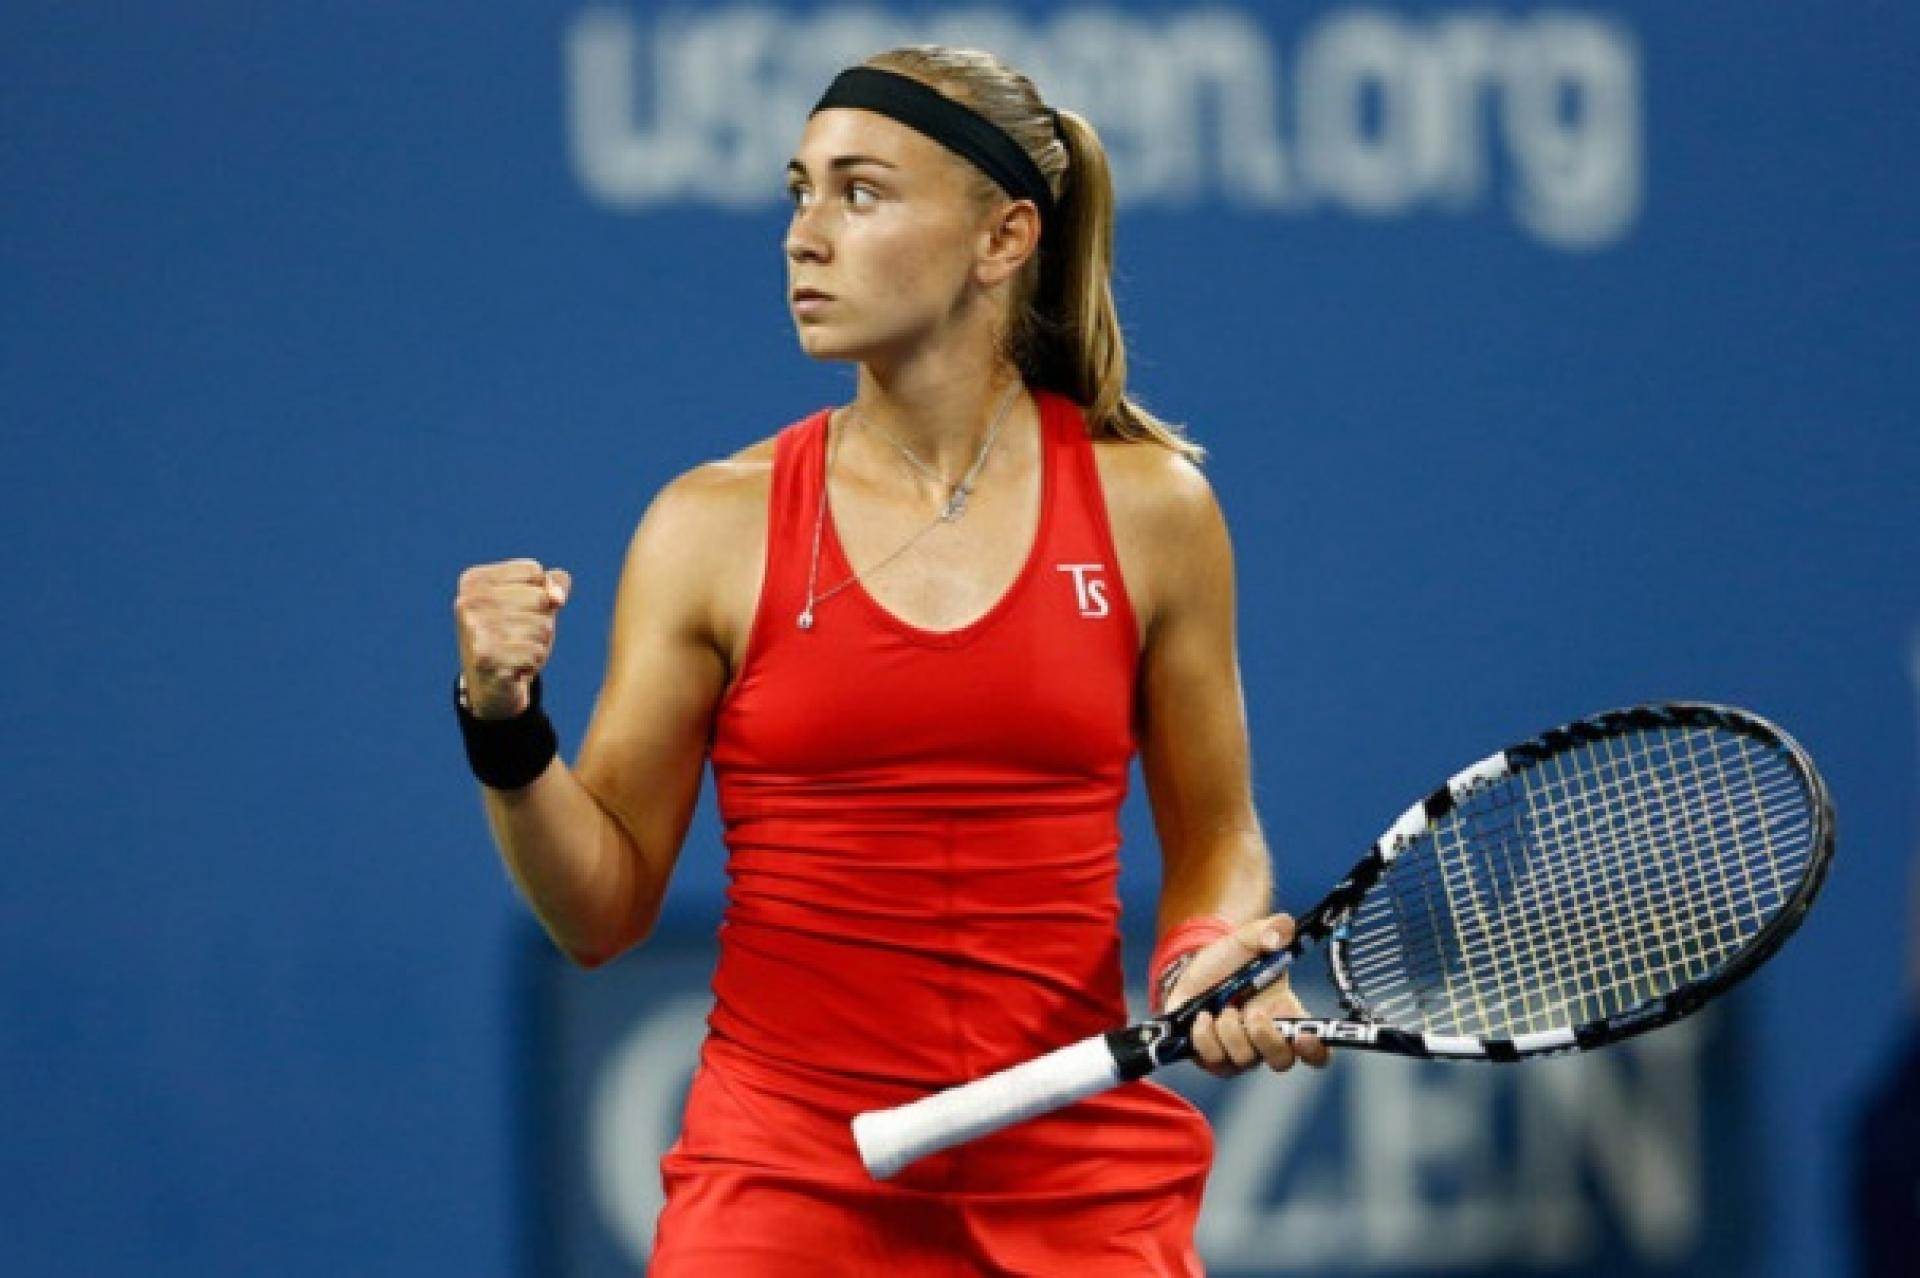 aleksandra-krunic-my-ultimate-goal-is-to-judge-myself-by-who-i-am-as-a-person.jpg